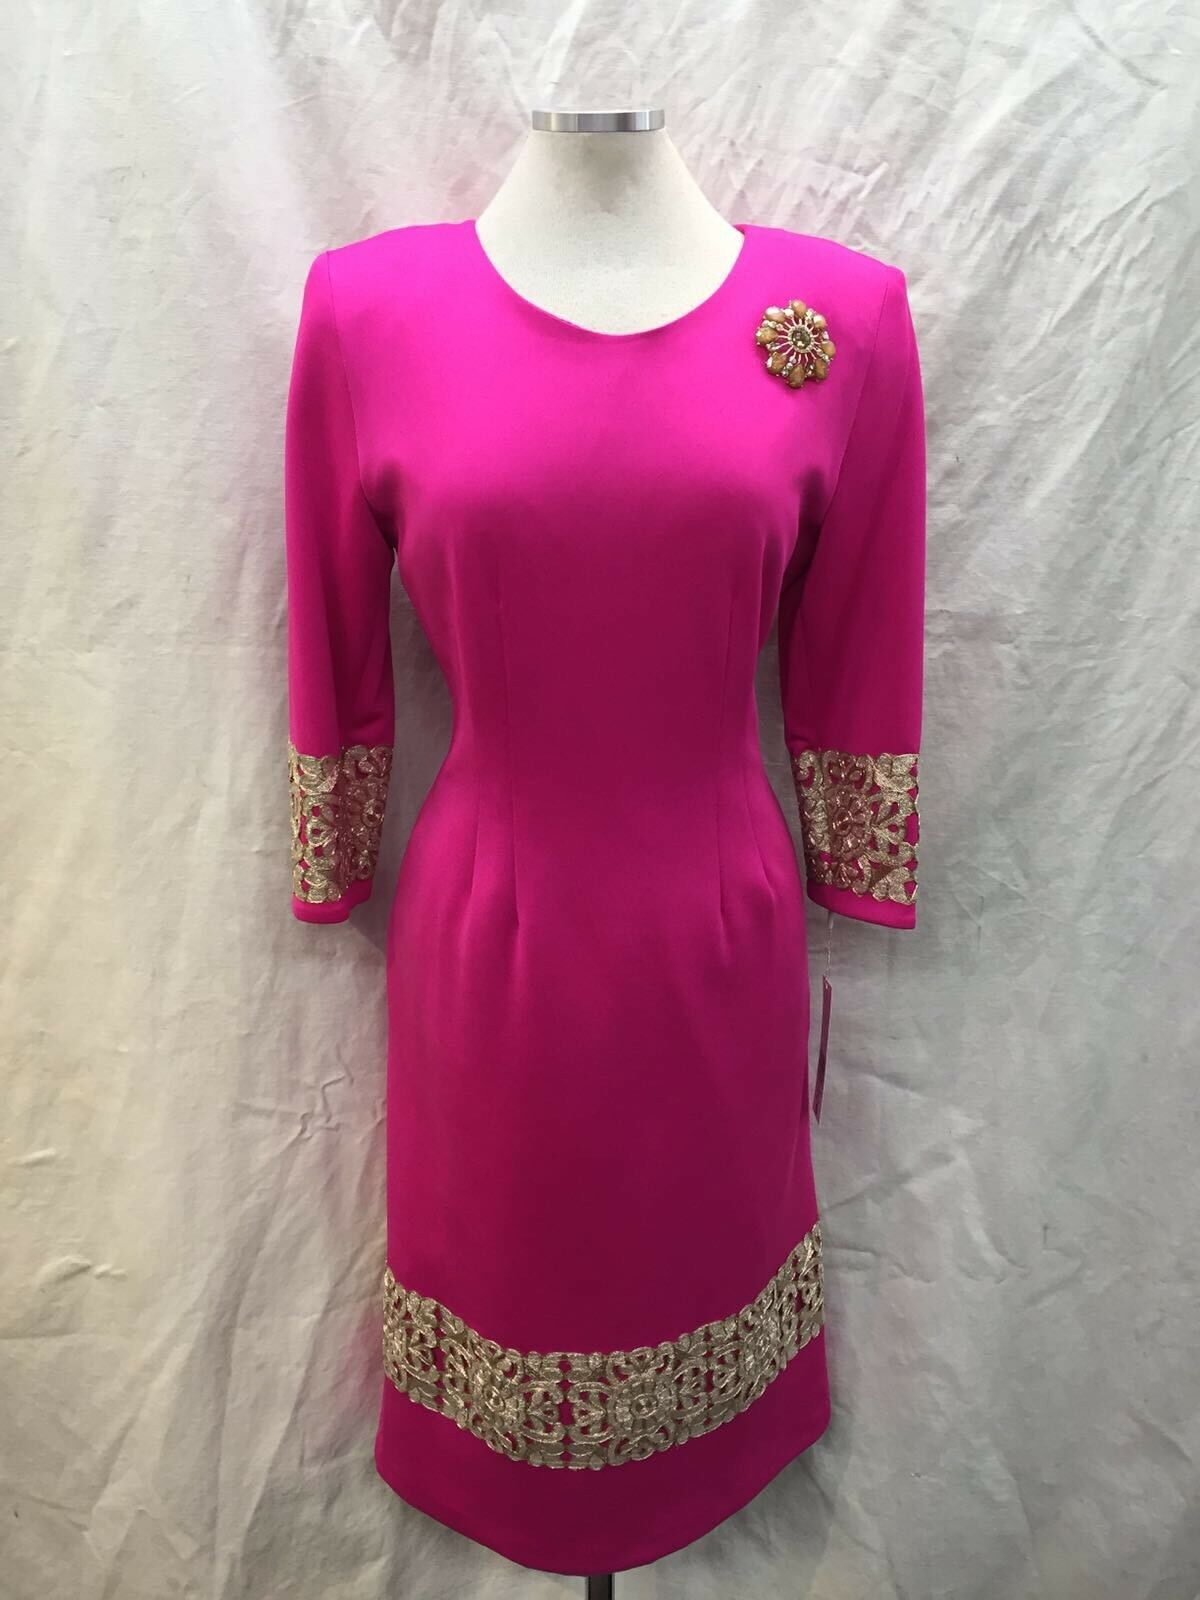 LILY&TAYLOR DRESS NEW WITH TAG LENGTH 44  LINED NEW WITH TAG Größe 20 FUCHSIA